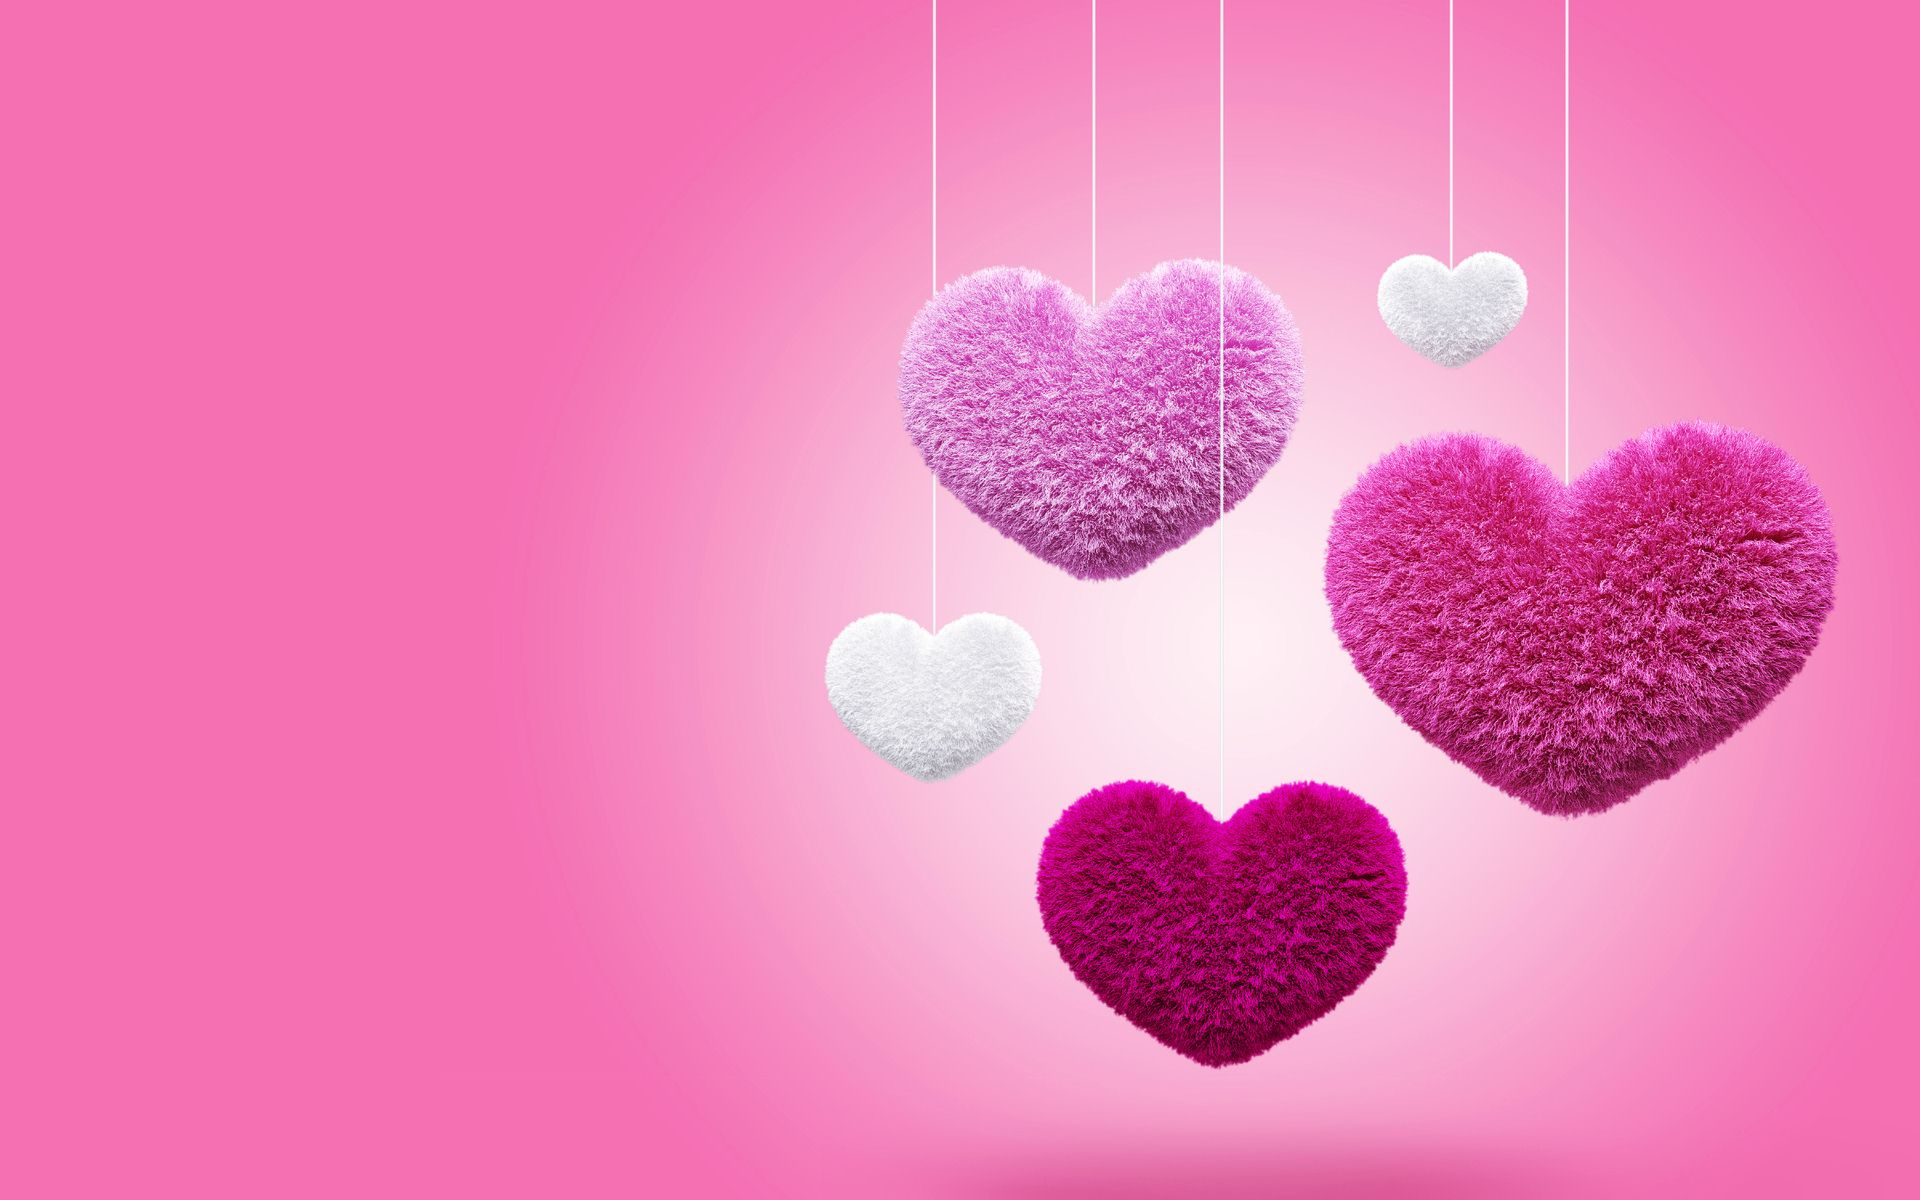 Love Heart Wallpaper Background 3d : 3D Love Heart 17 High Resolution Wallpaper - Hdlovewall.com